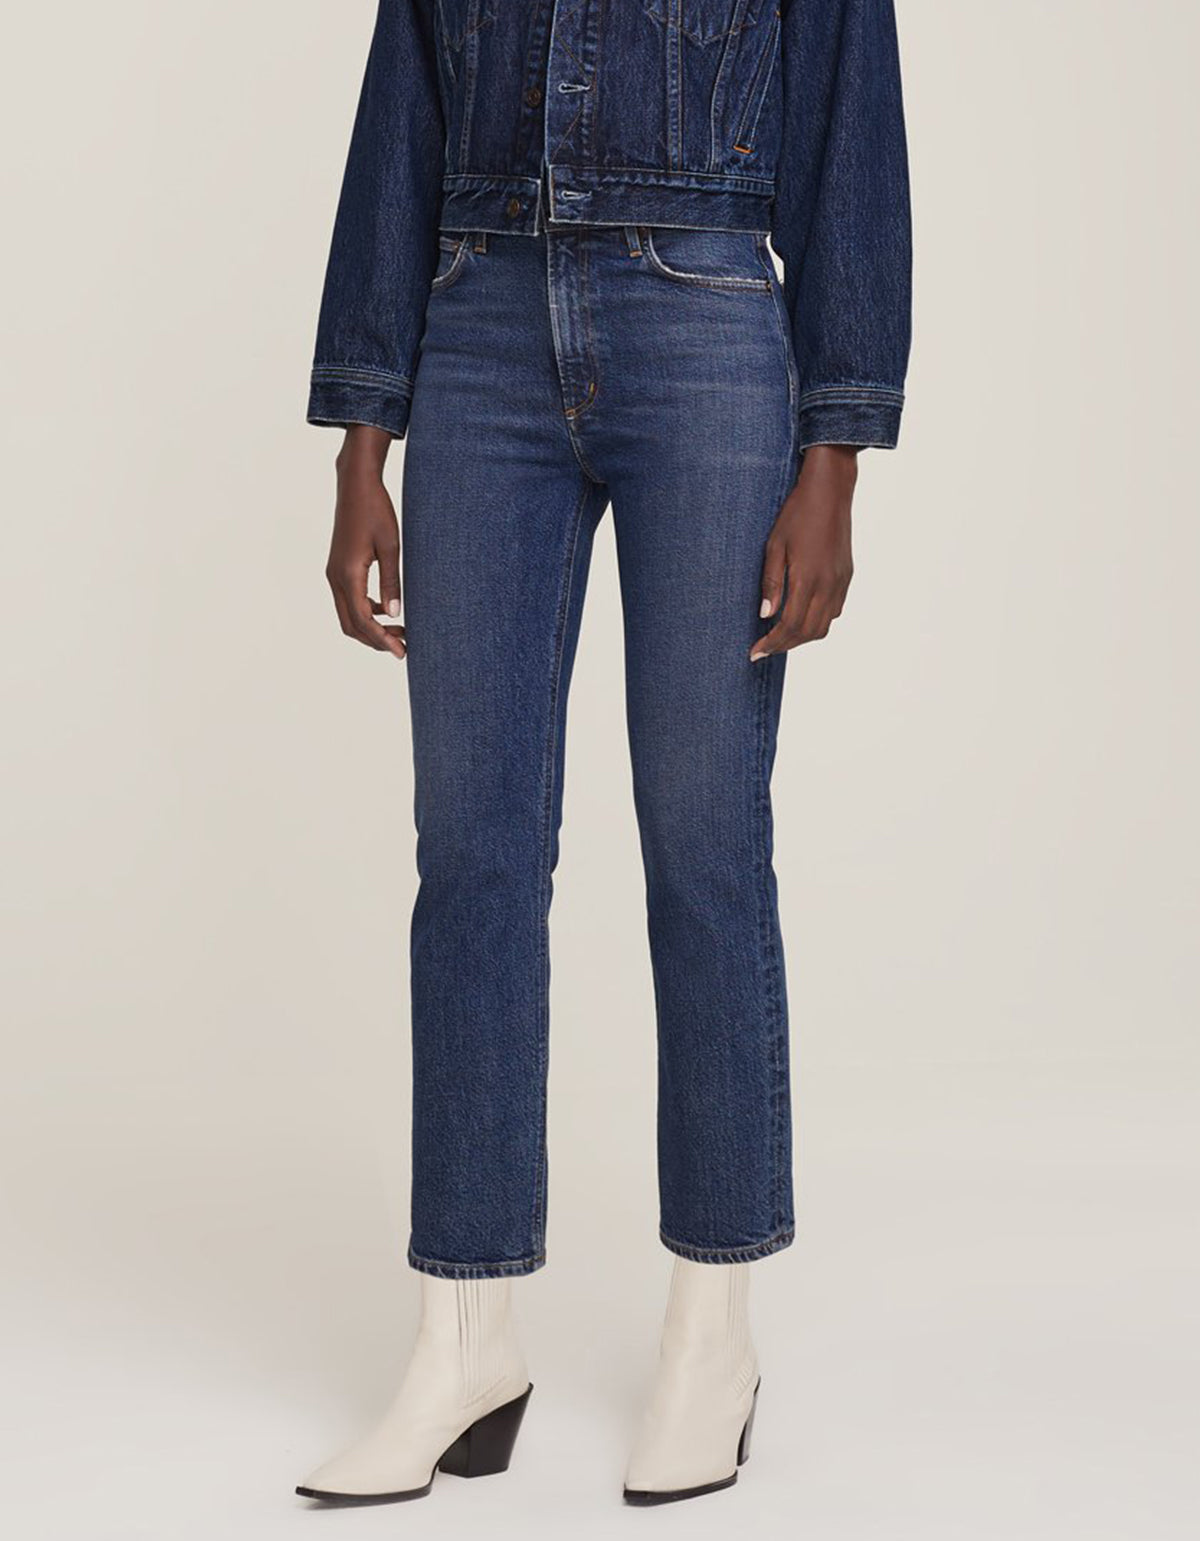 Agolde Wilder Hi Rise Comfort Straight Jean in Hype